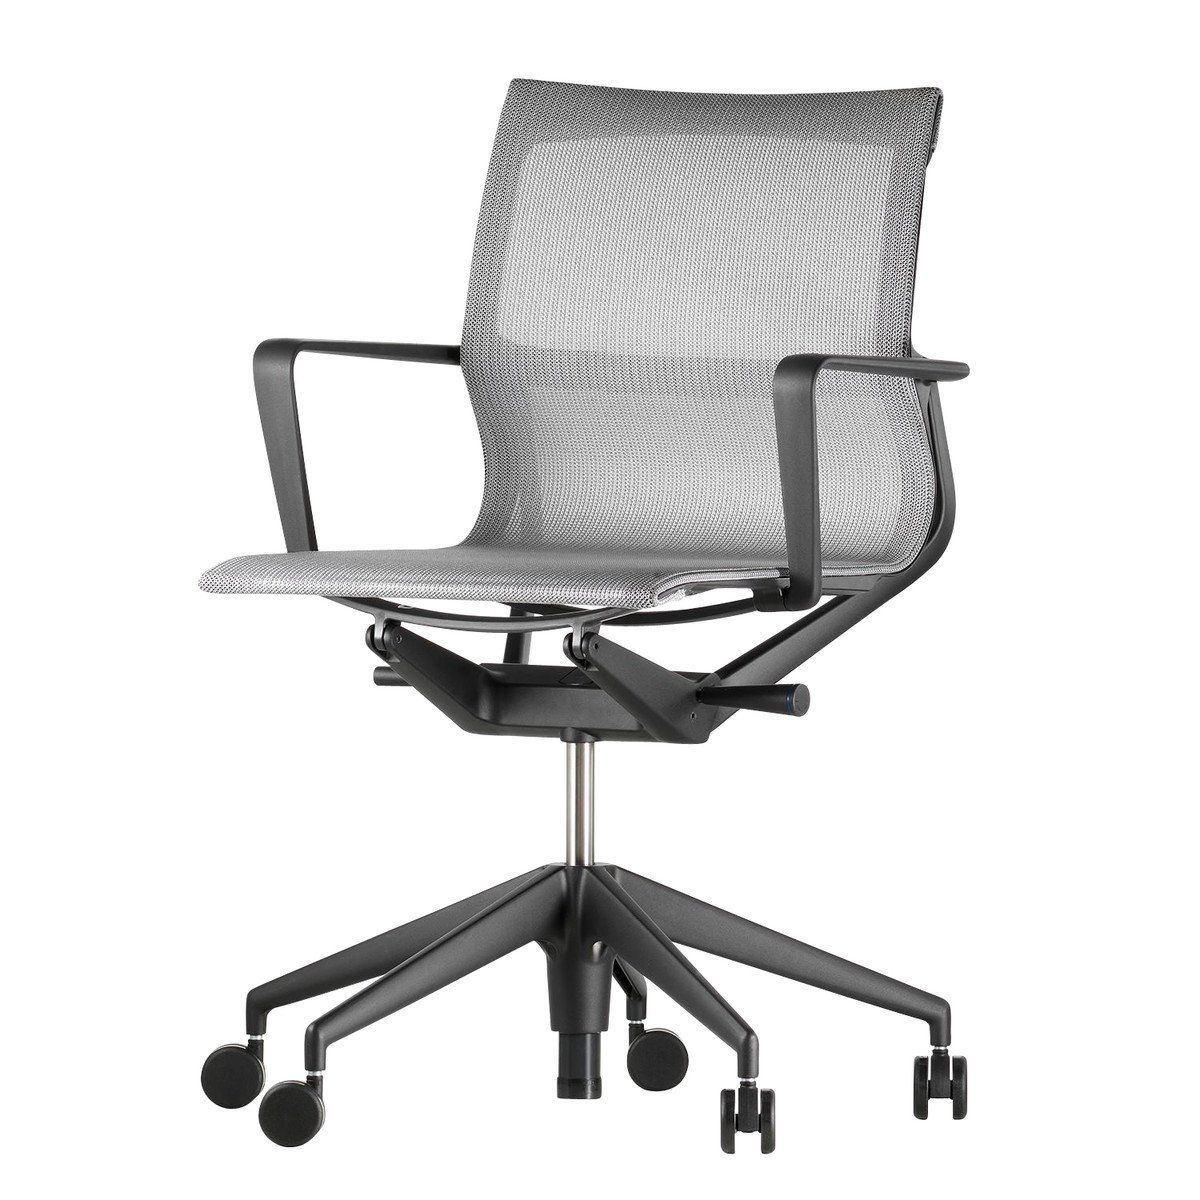 vitra office chair price theater style chairs for home physix meda ambientedirect